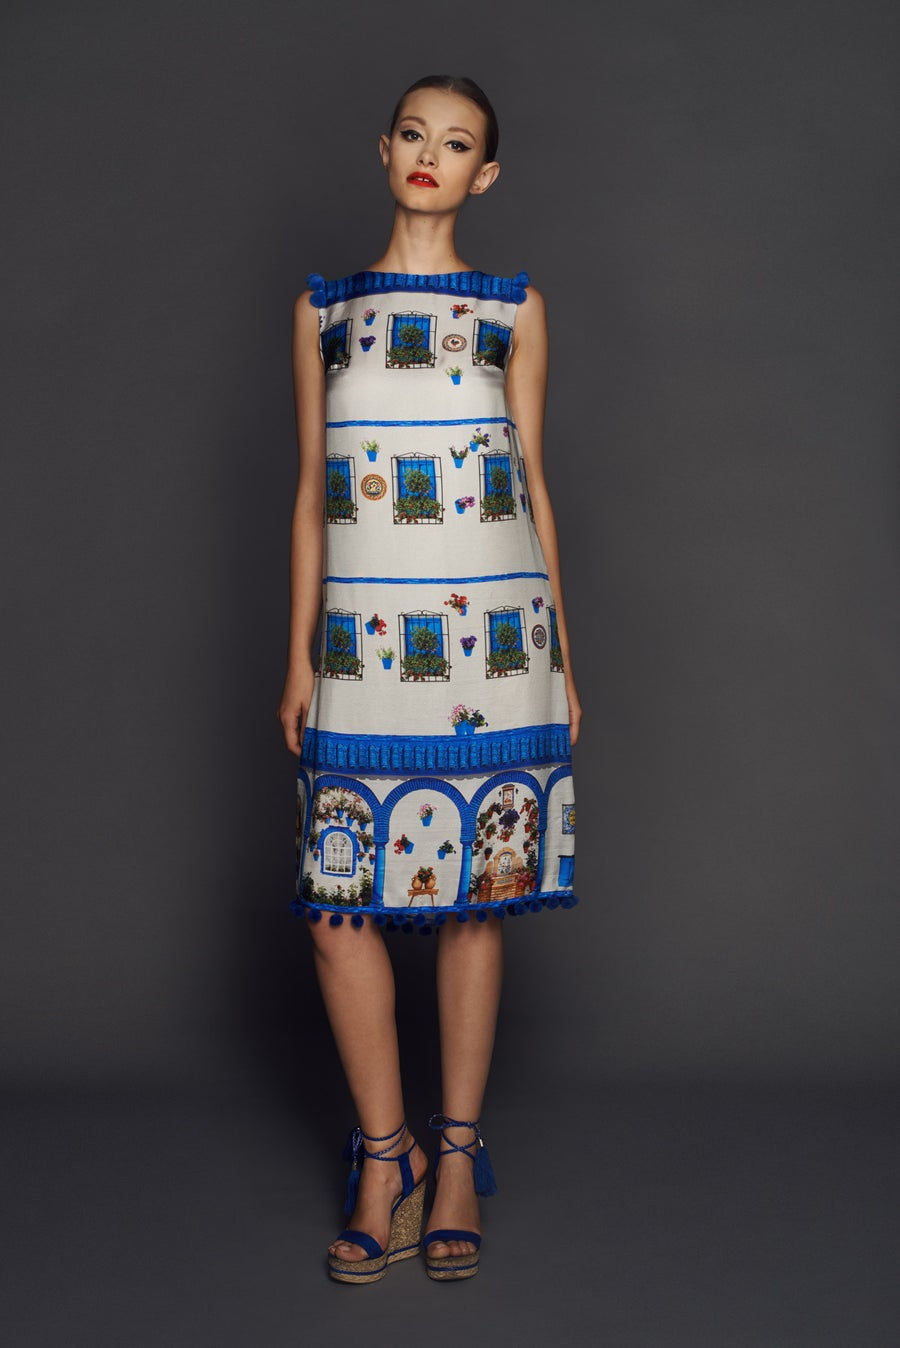 Image of Windows dress from Andalusia collection